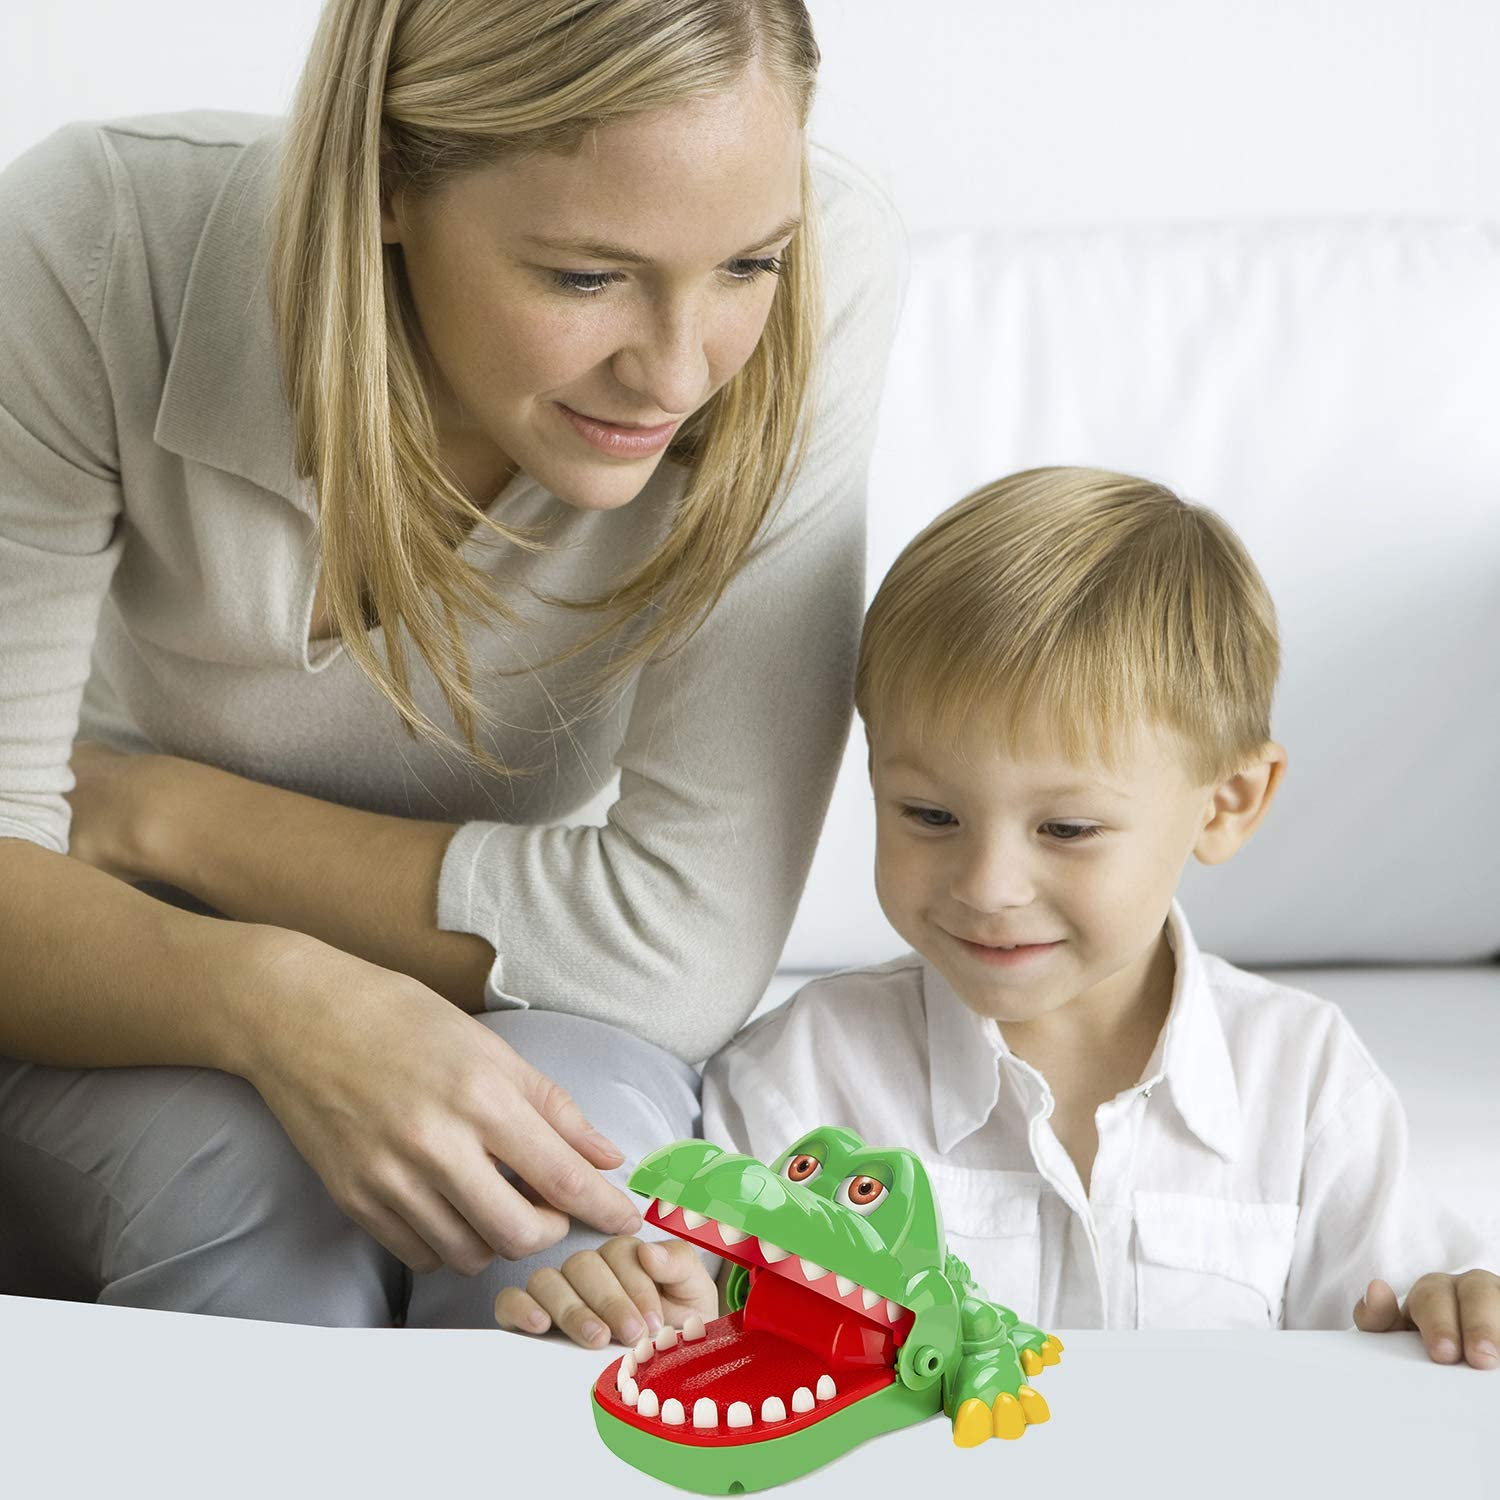 Crocodile Teeth Toys Game for Kids, Crocodile Biting Finger Dentist Games Funny Toys, 2020 Version